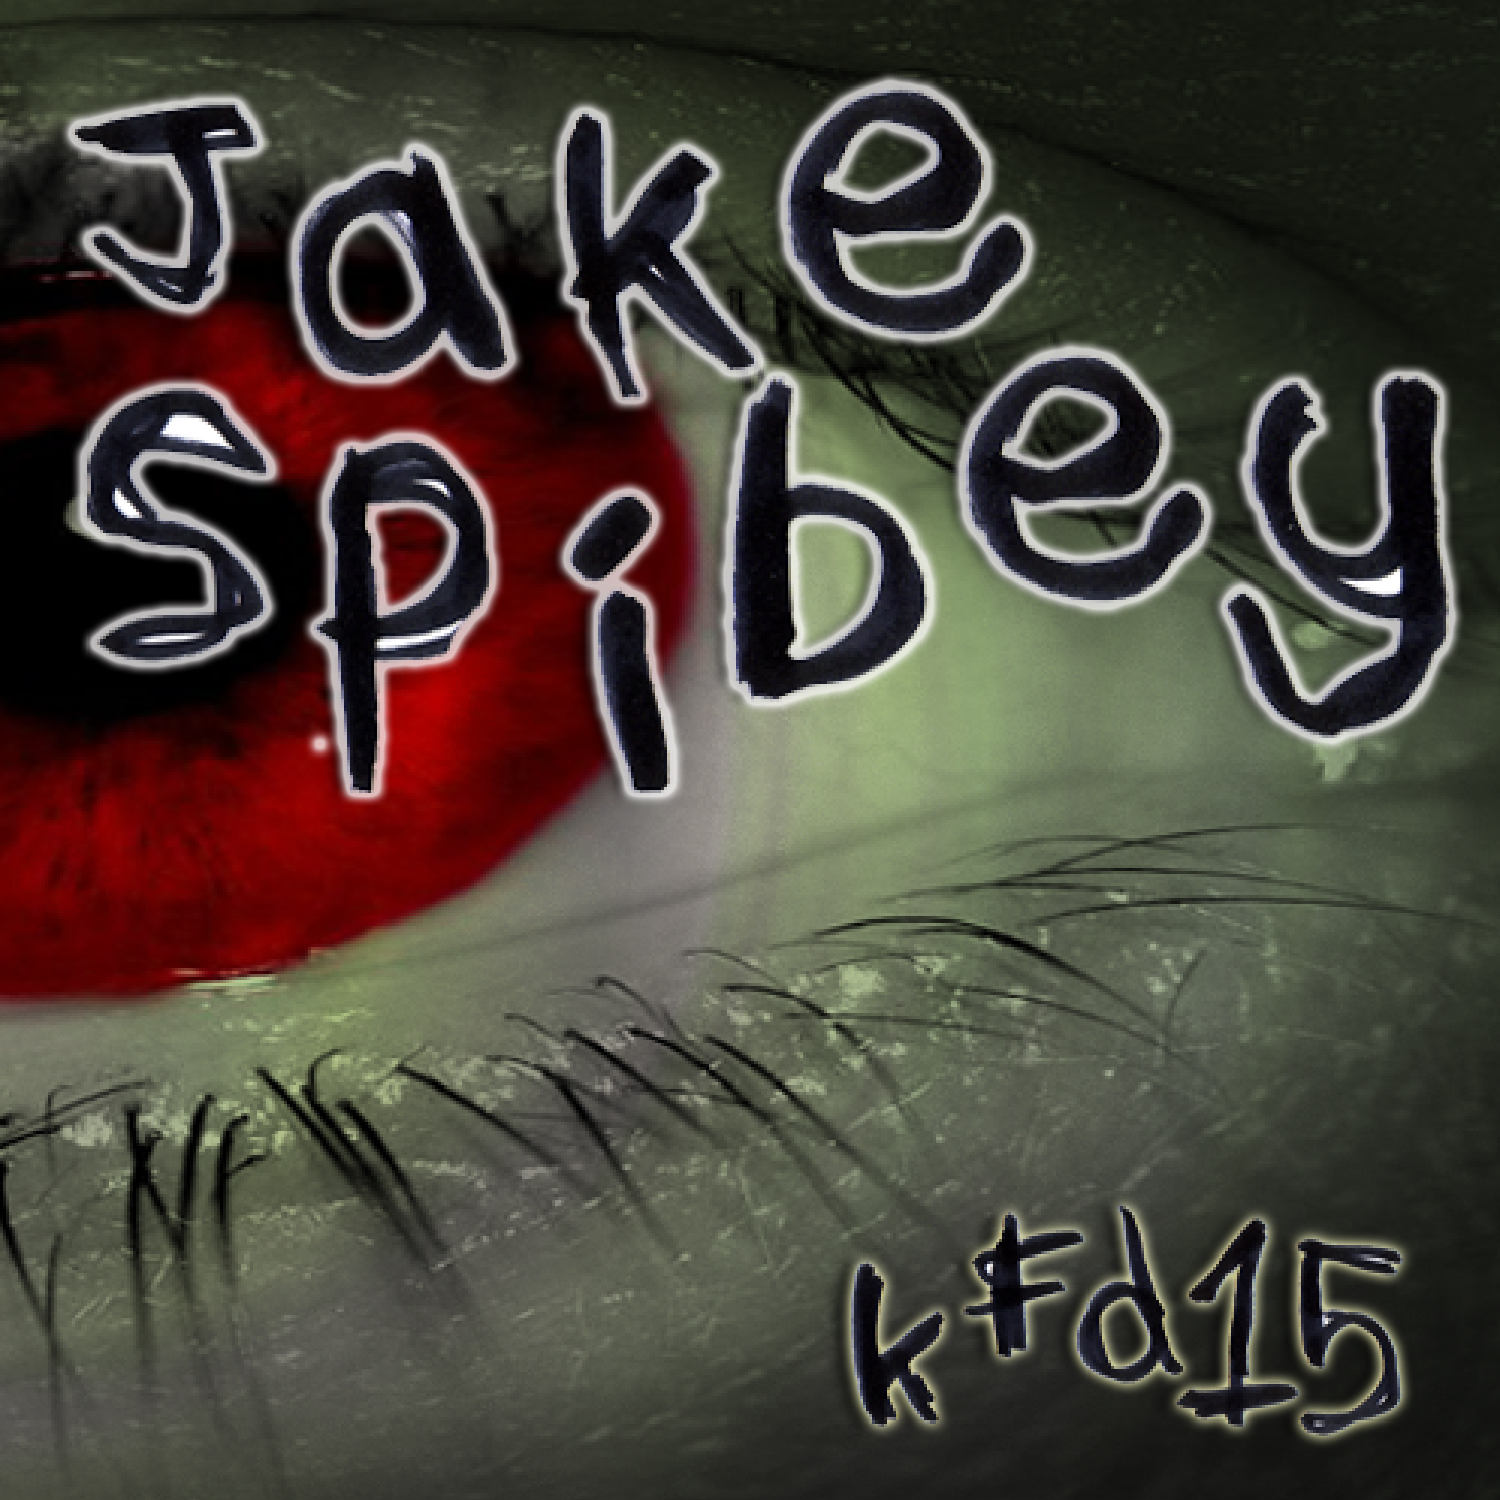 [KFD015] Jake Spibey - Changes EP (Digital Only)